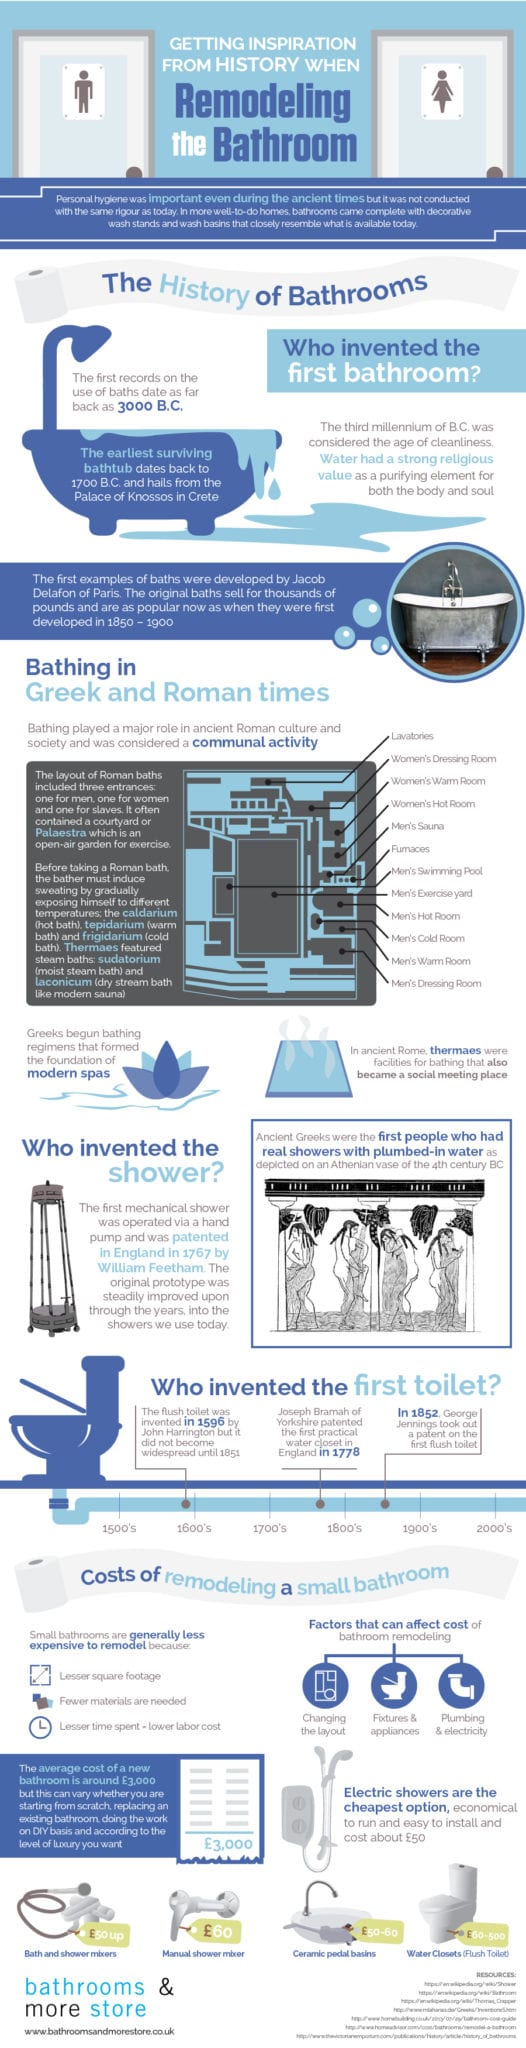 A History of Bathrooms